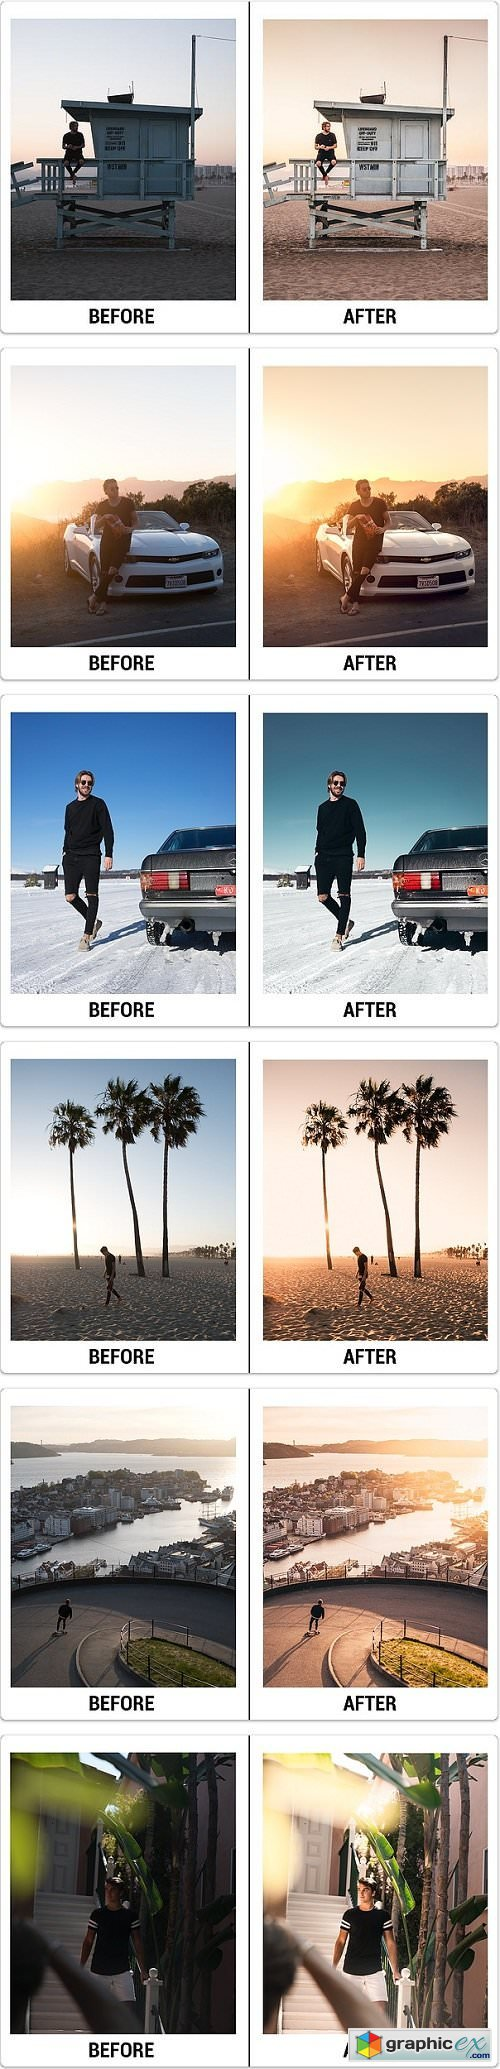 Marcus Valeur Original Lightroom Presets